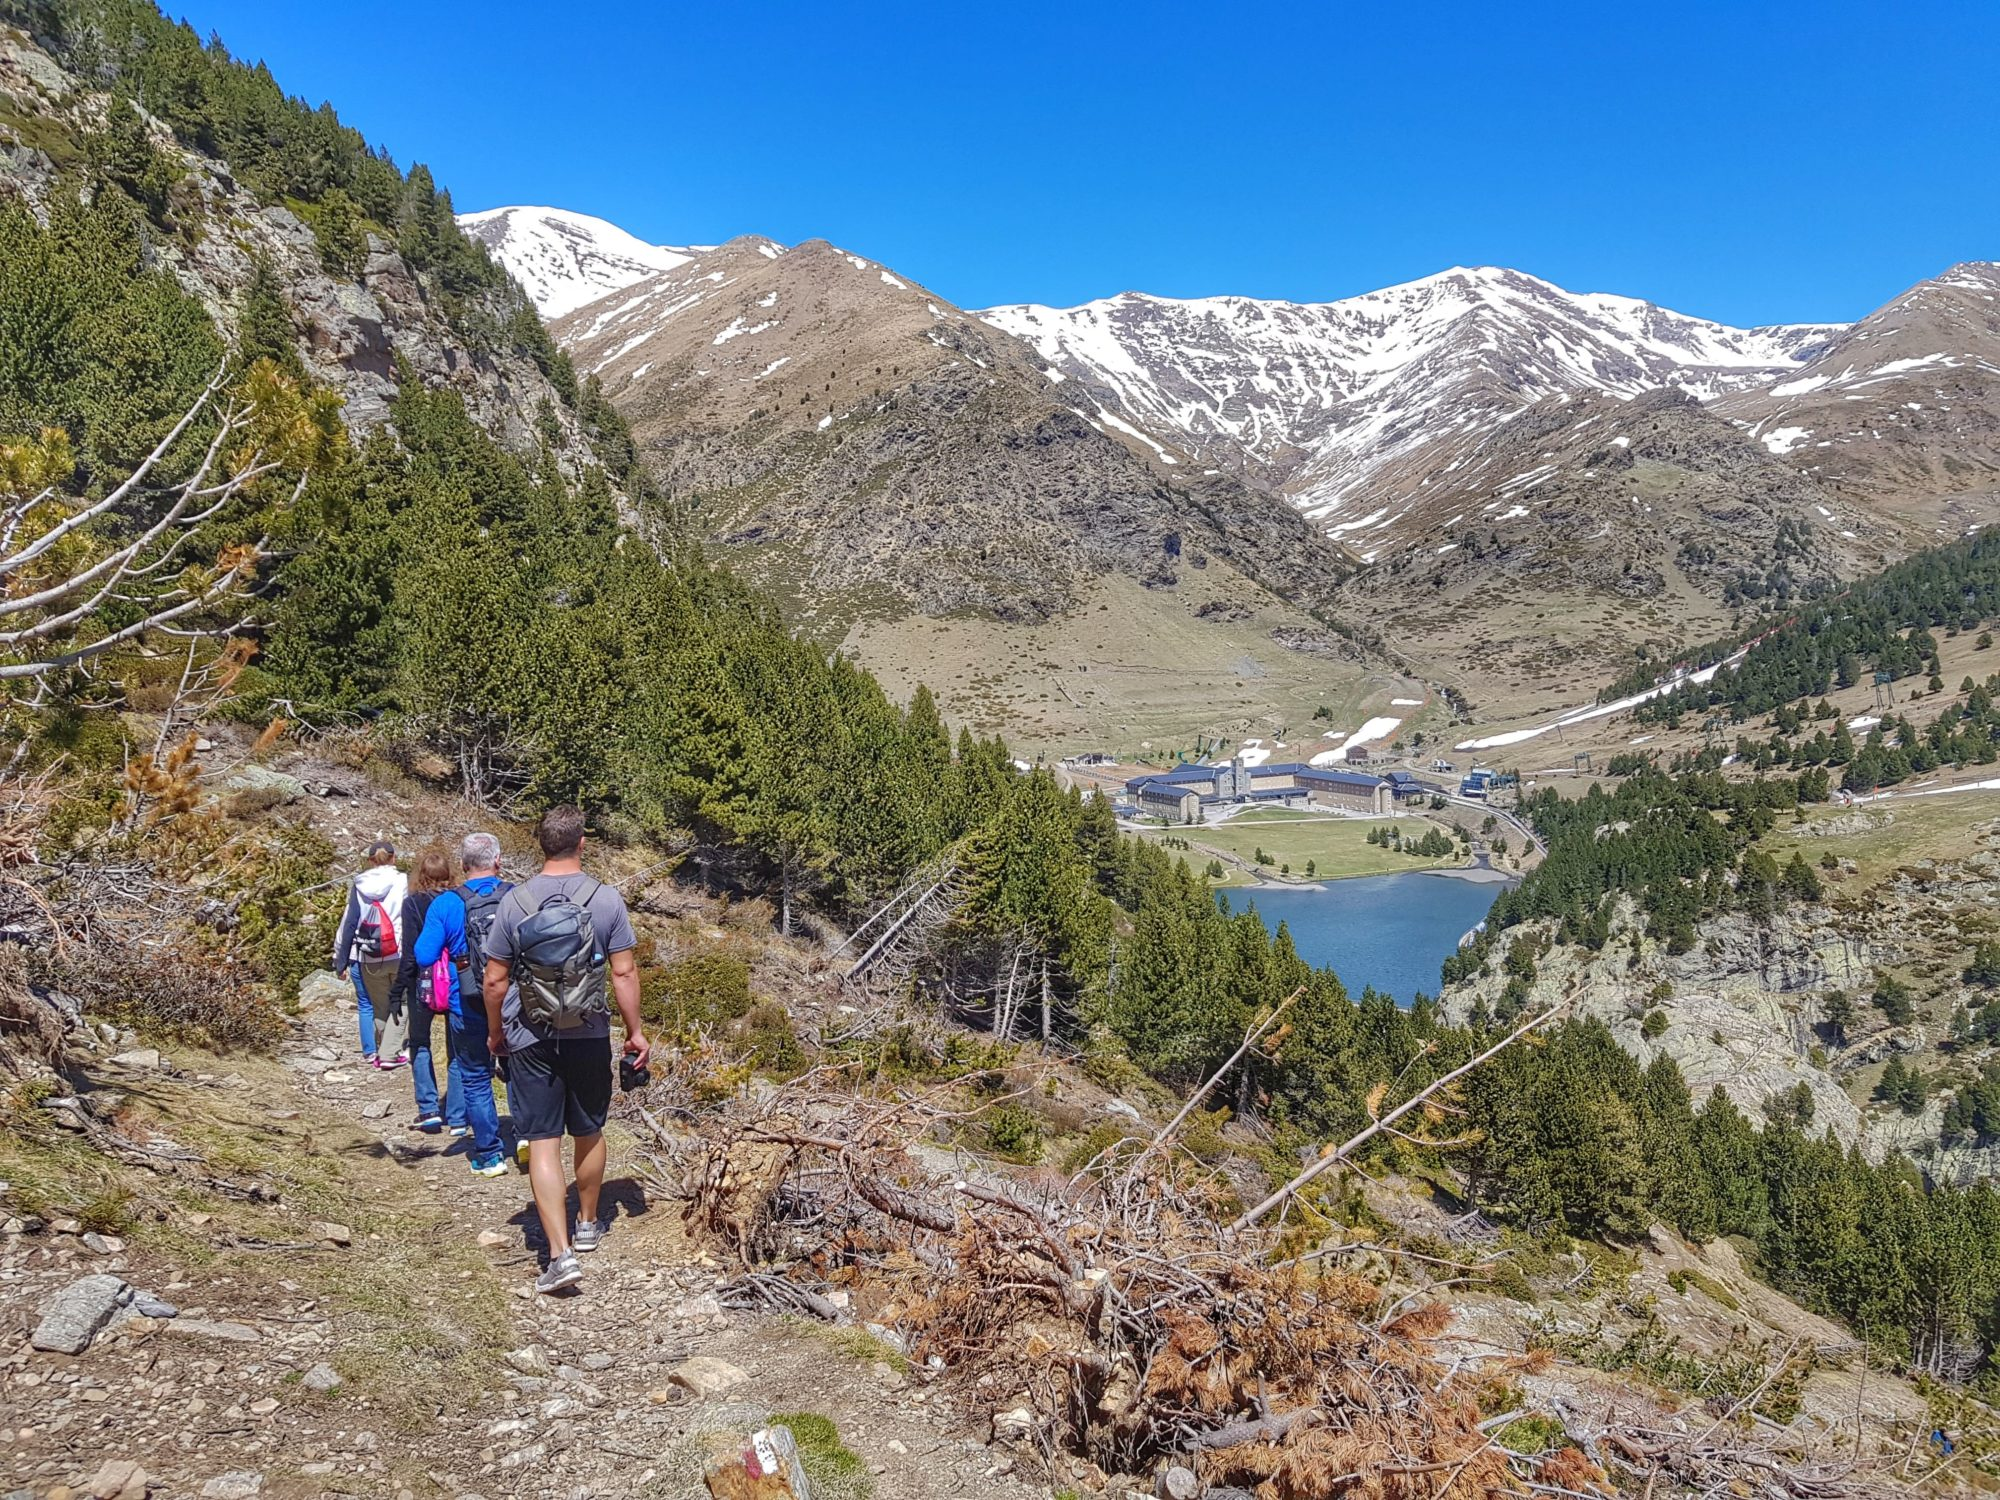 Follow the beautiful trail Les Coves around the Nuria Valley